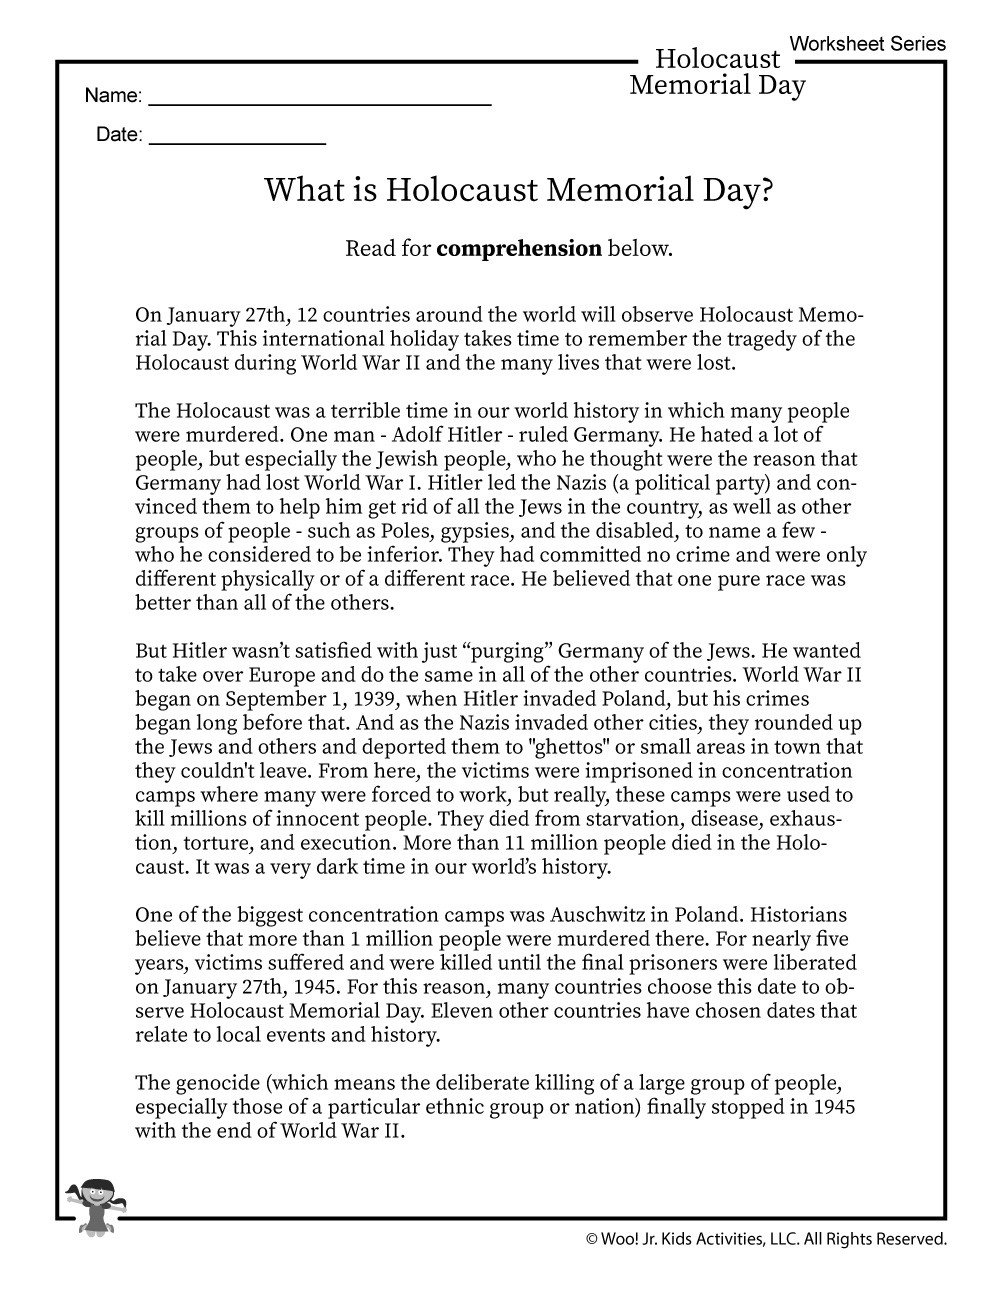 Memorial Day Reading Comprehension Worksheets What is Holocaust Memorial Day